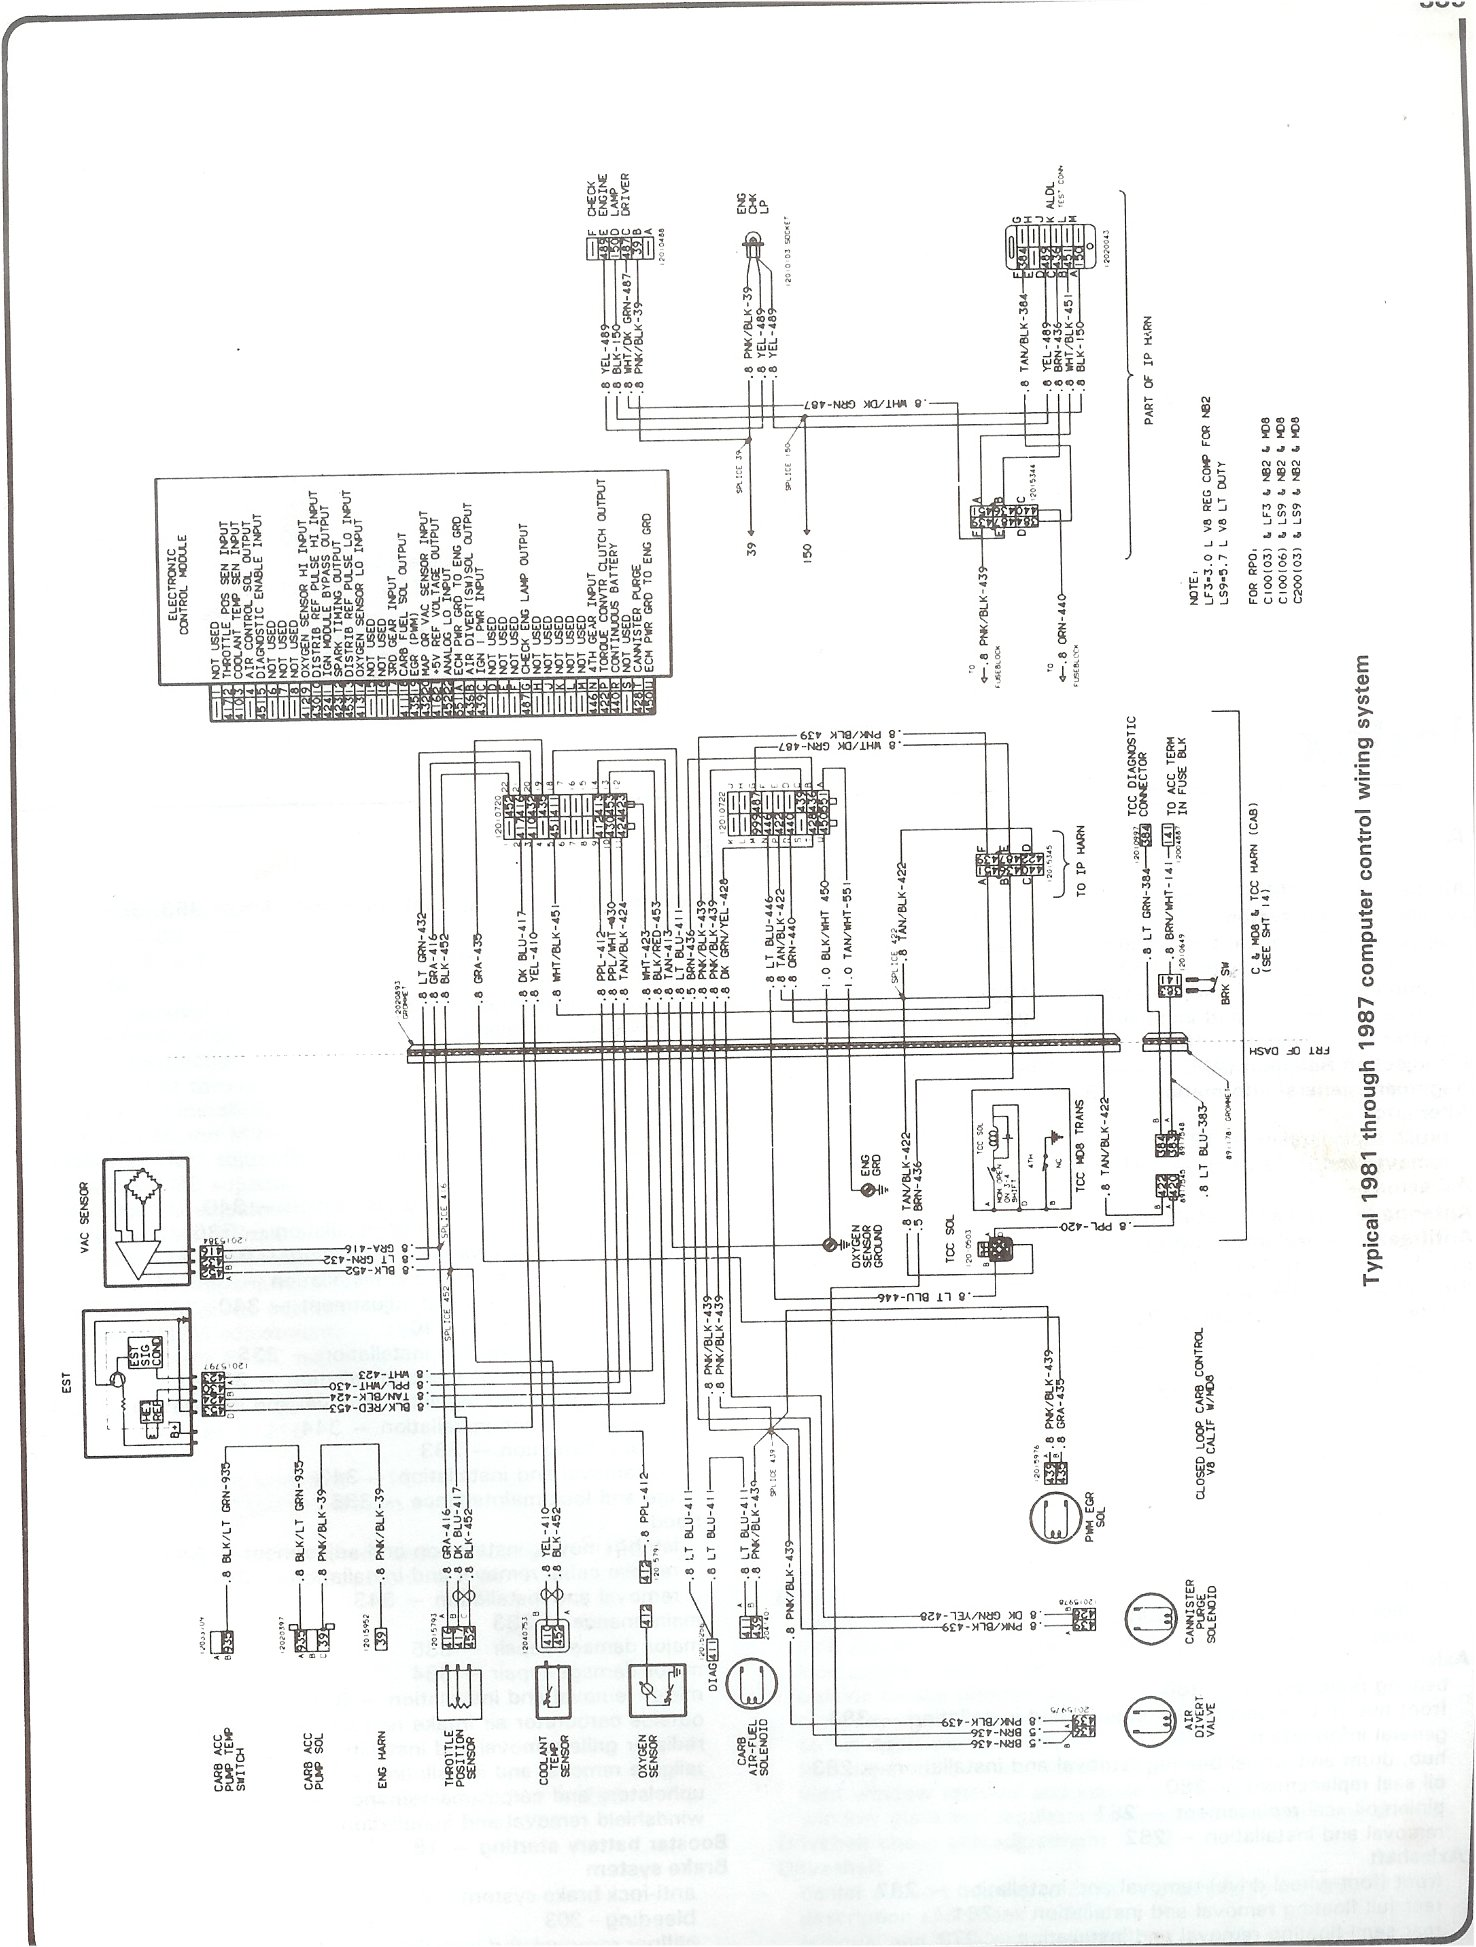 1980 Chevy Heater Wiring Real Diagram 240v Electric Water Diagrams 87 Fuse Online Schematics Rh Delvato Co Baseboard